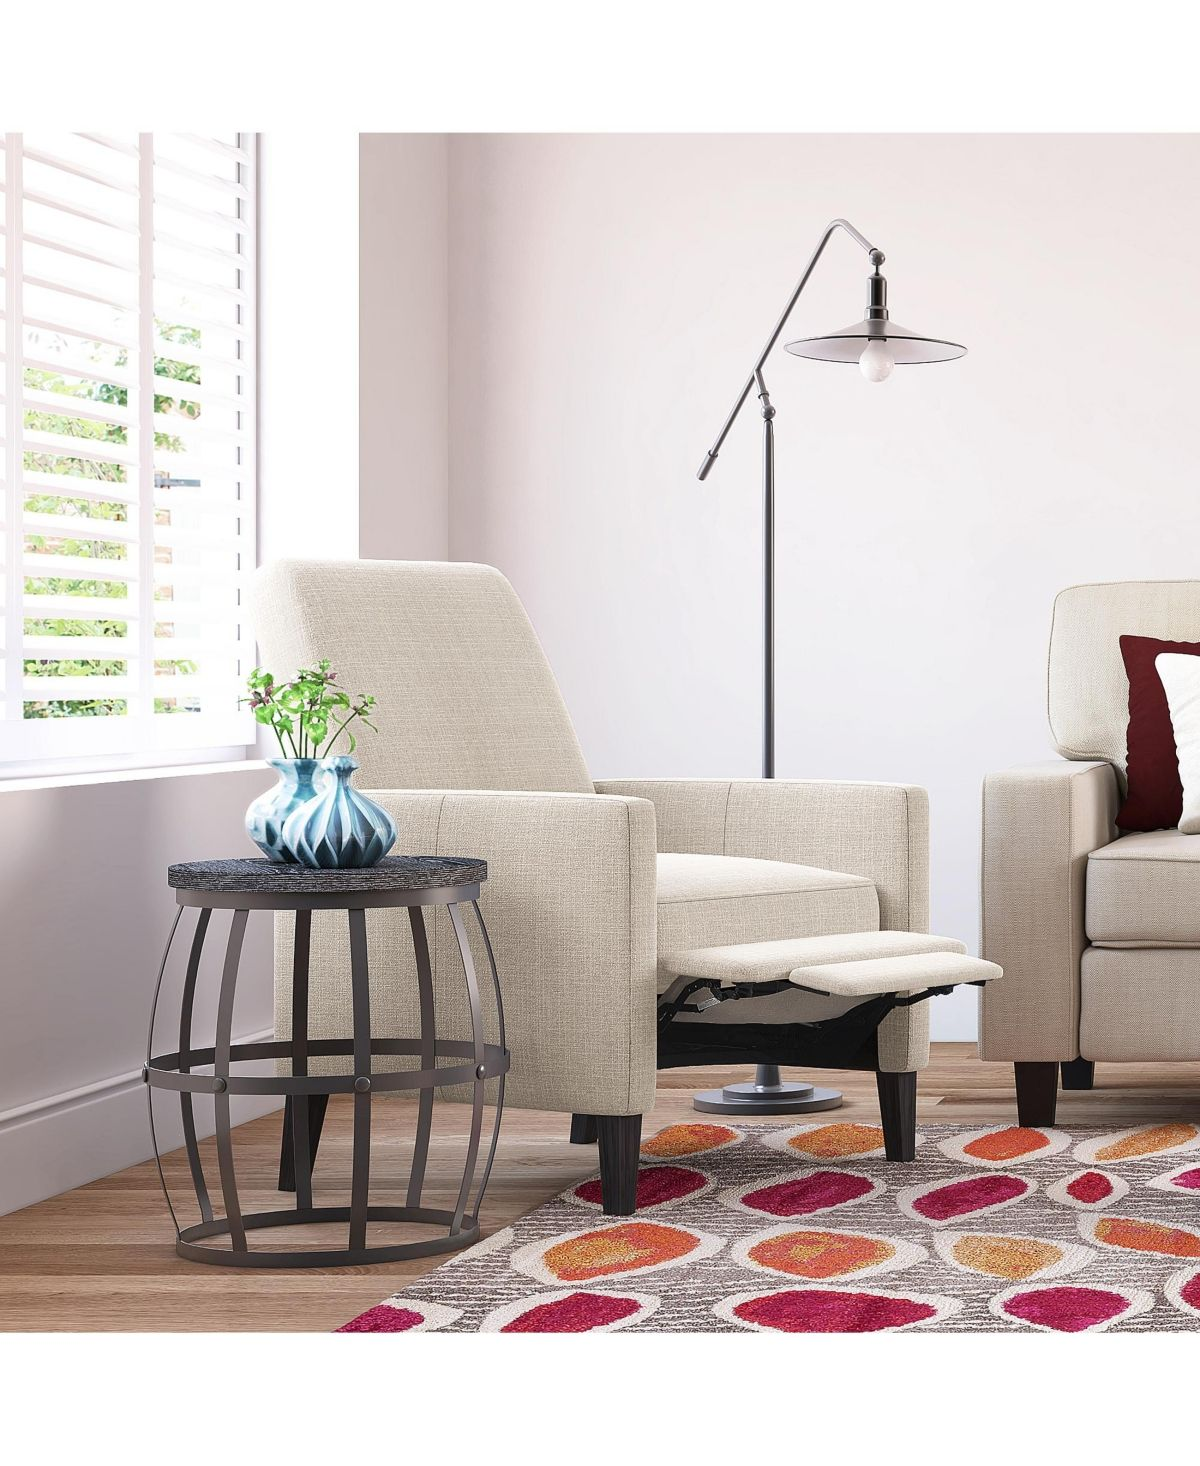 Outstanding Closeout Truly Home Cooper Push Back Reclining Accent Chair Onthecornerstone Fun Painted Chair Ideas Images Onthecornerstoneorg